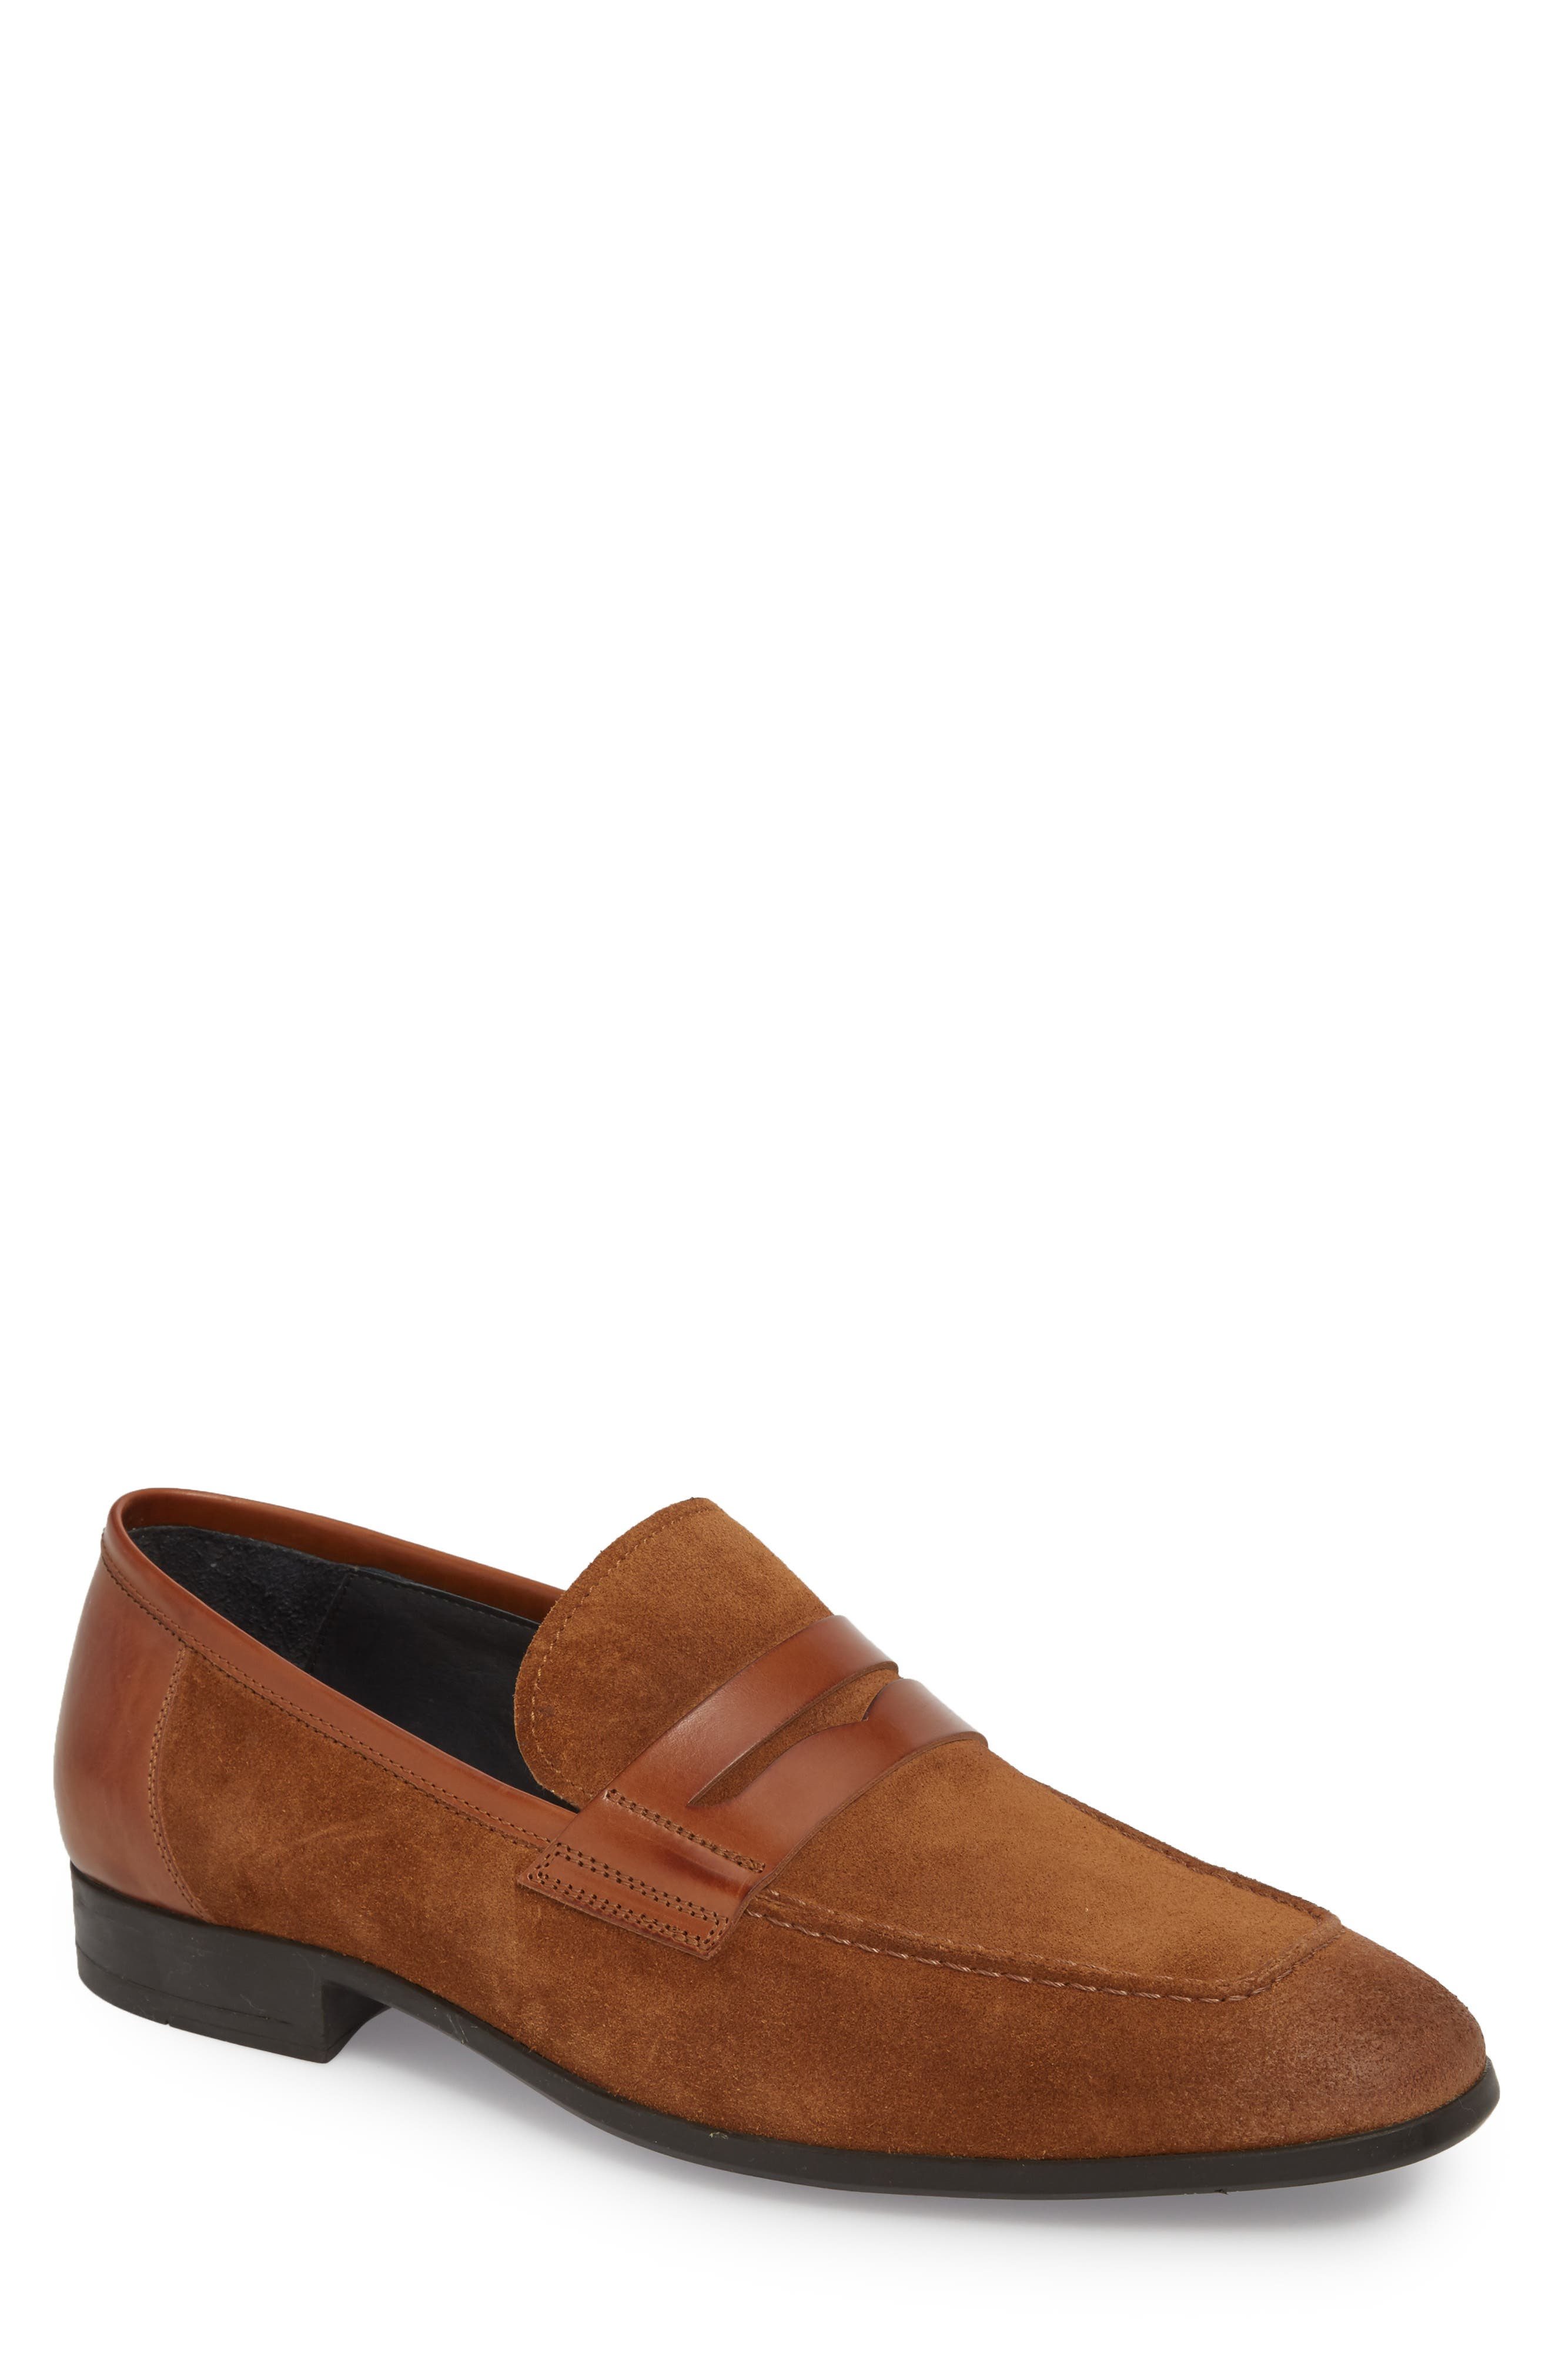 Powell Penny Loafer,                             Main thumbnail 1, color,                             200